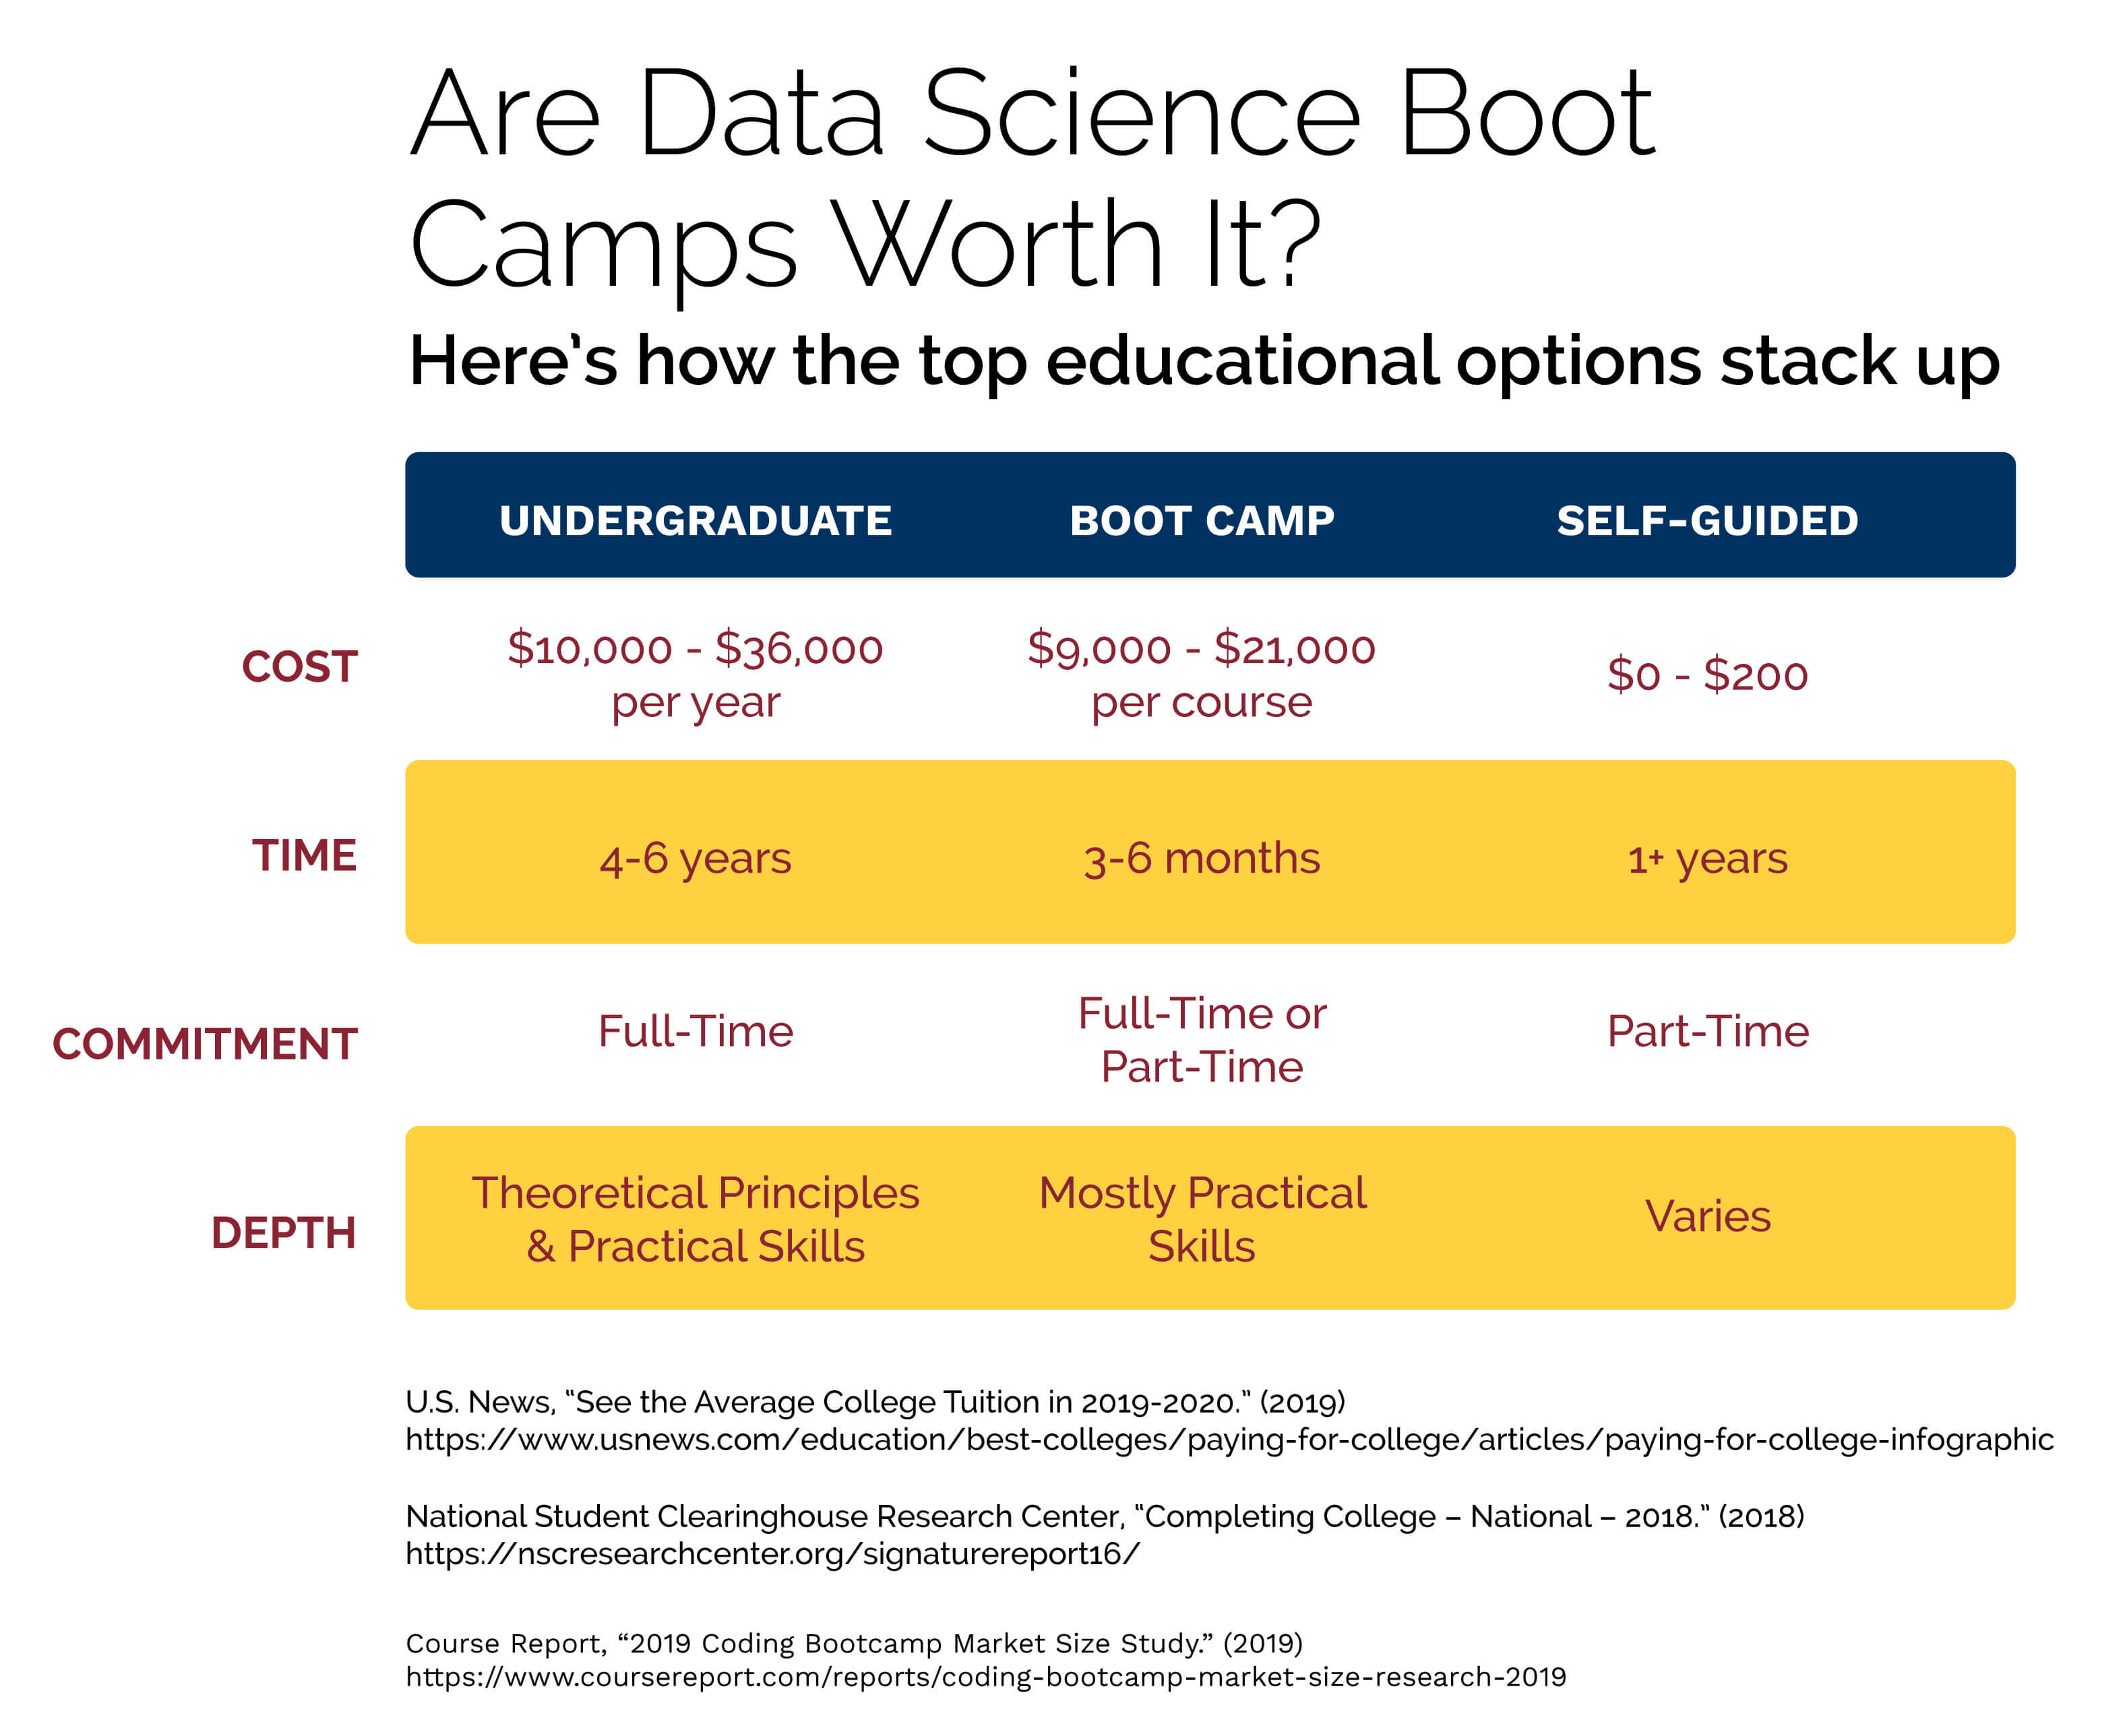 A chart that shows how data science boot camps compare to other educational options